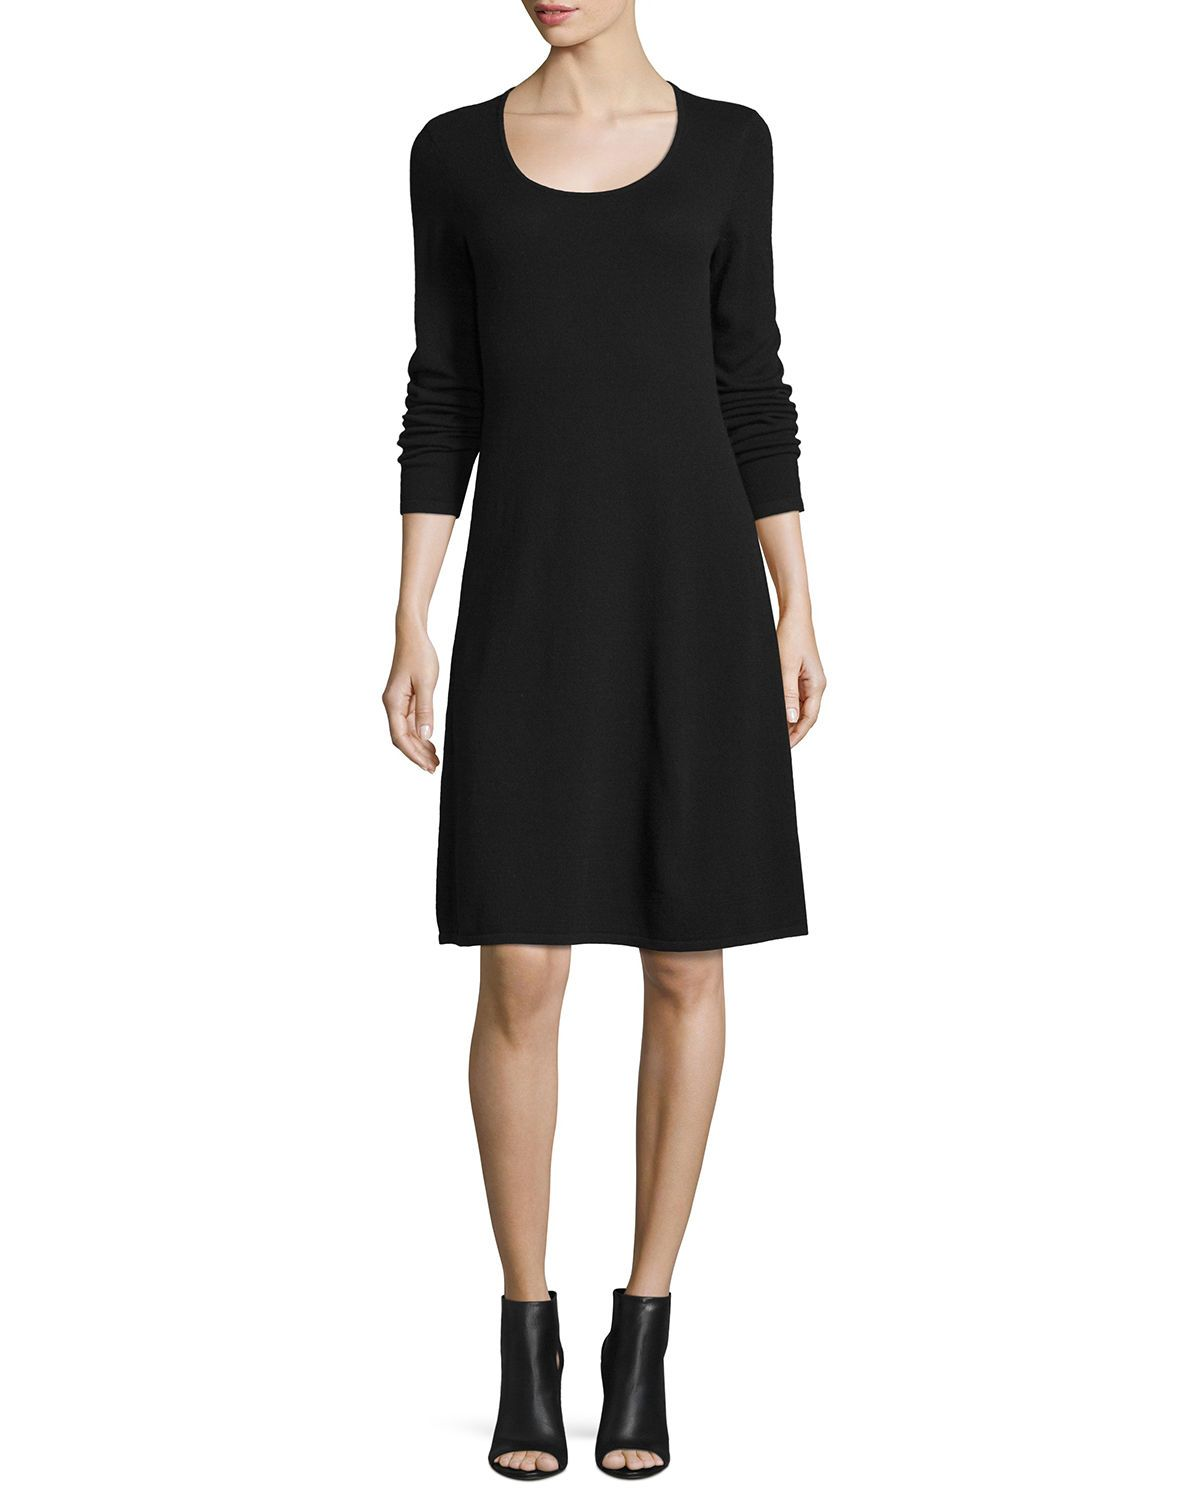 Magaschoni Cashmere Long Sleeve Fit Flare Dress Magaschoni Cloth Fit Flare Dress Cashmere Sweater Women Clothes [ 1500 x 1200 Pixel ]